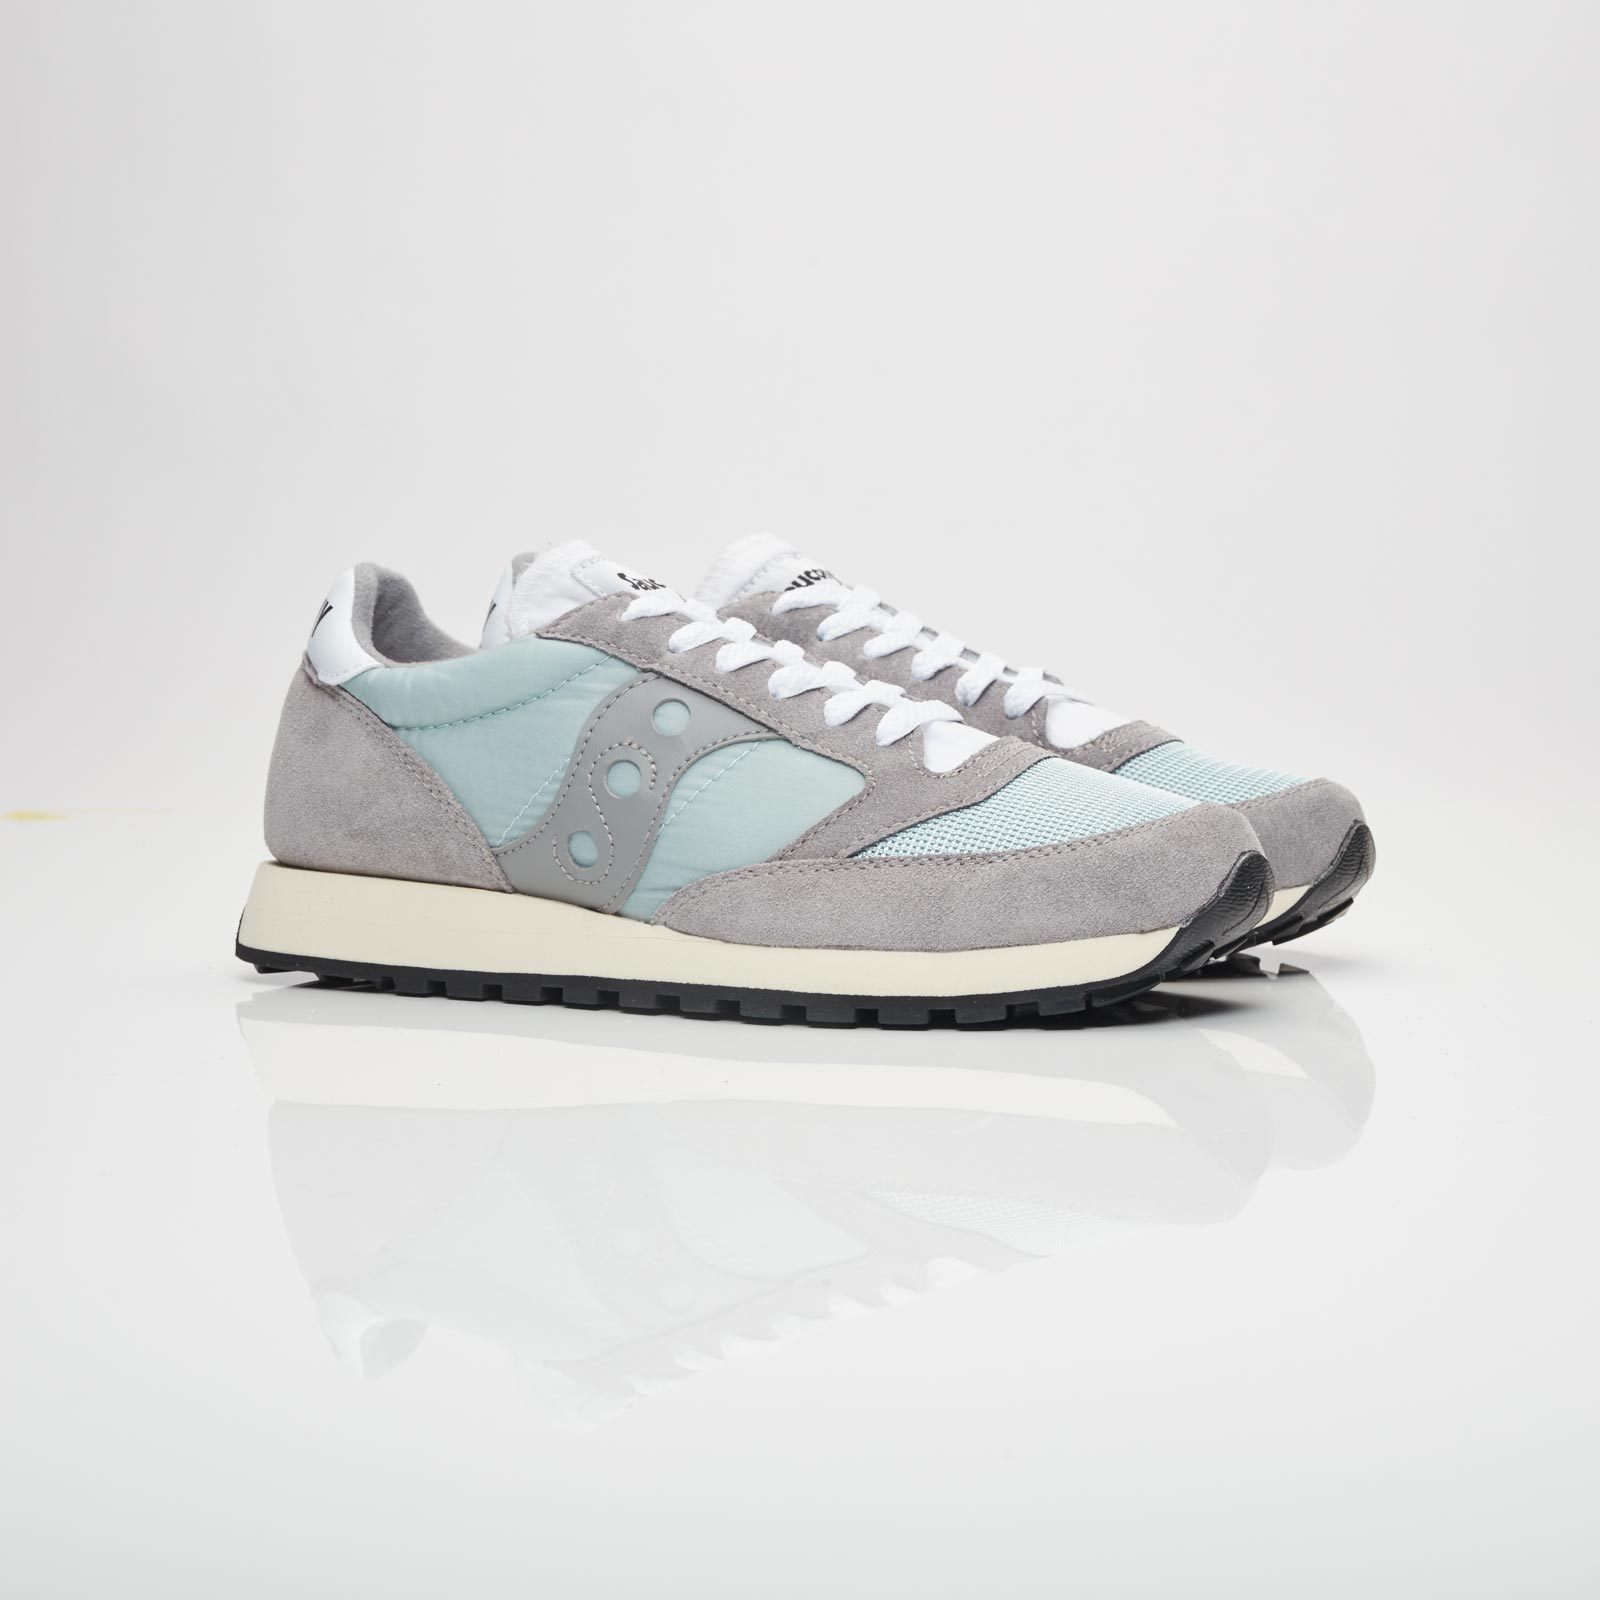 Saucony Jazz Original Sneakers In S70368-5 kEQXhHzE